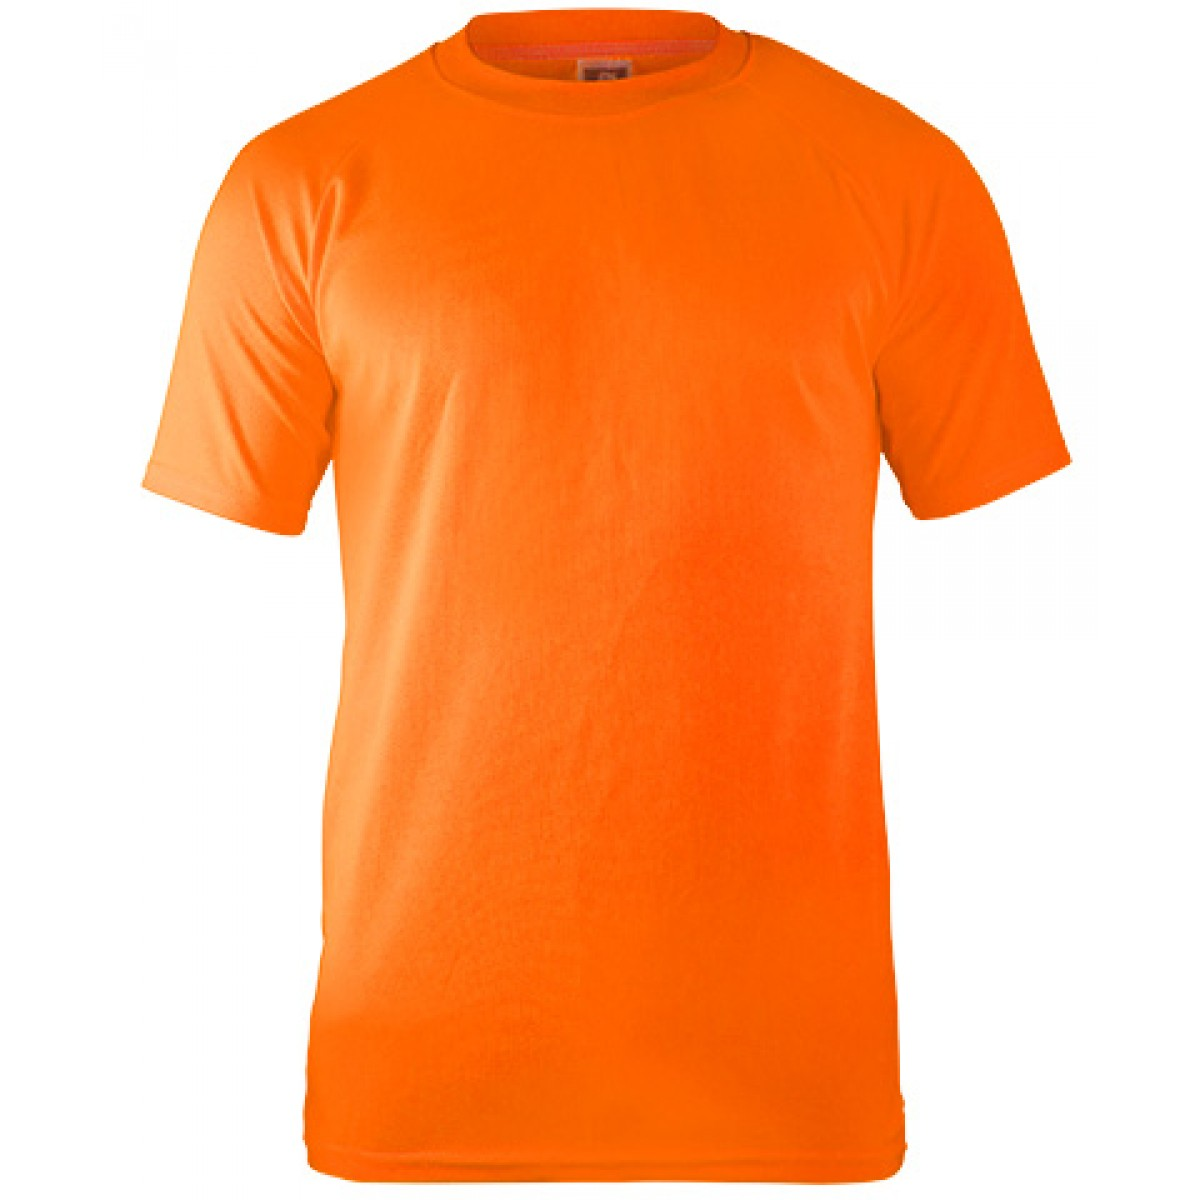 Performance T-shirt-Safety Orange-XS